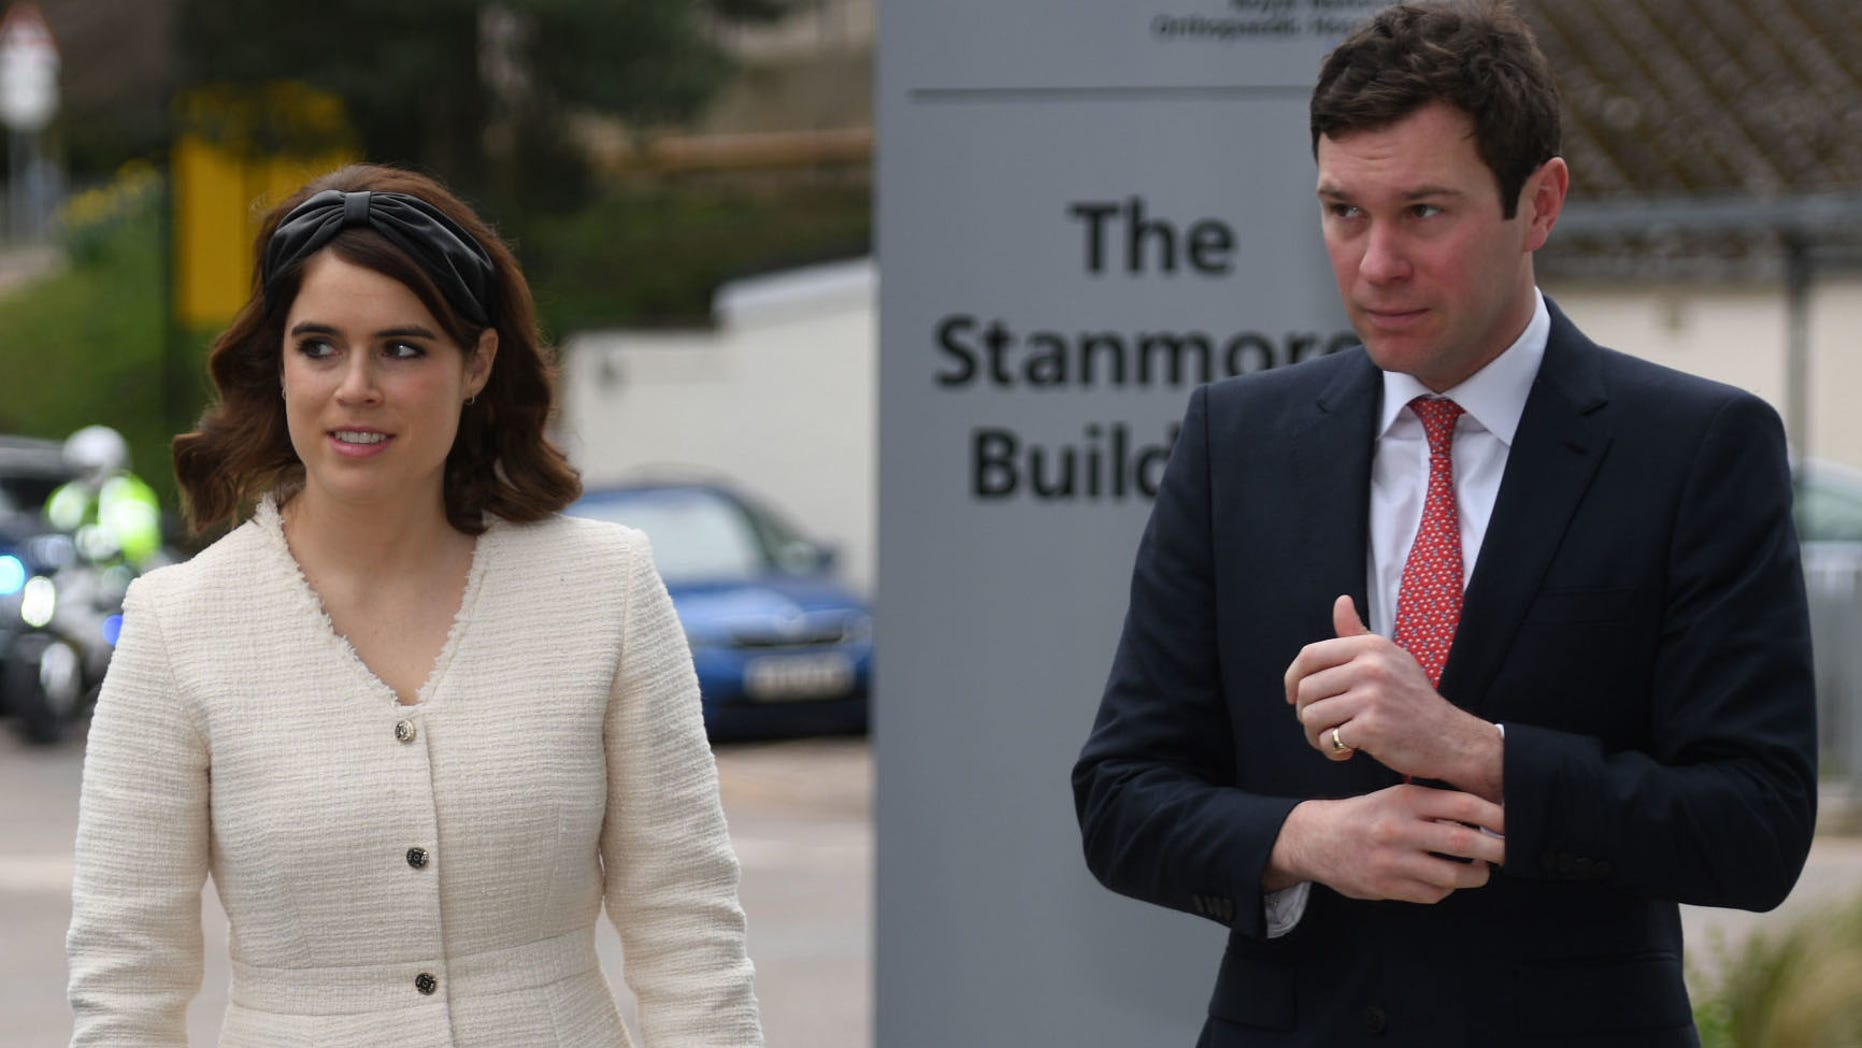 Princess Eugenie of York and Jack Brooksbank arrive at the Royal National Orthopaedic Hospital to open the new Stanmore Building on Thursday in London.